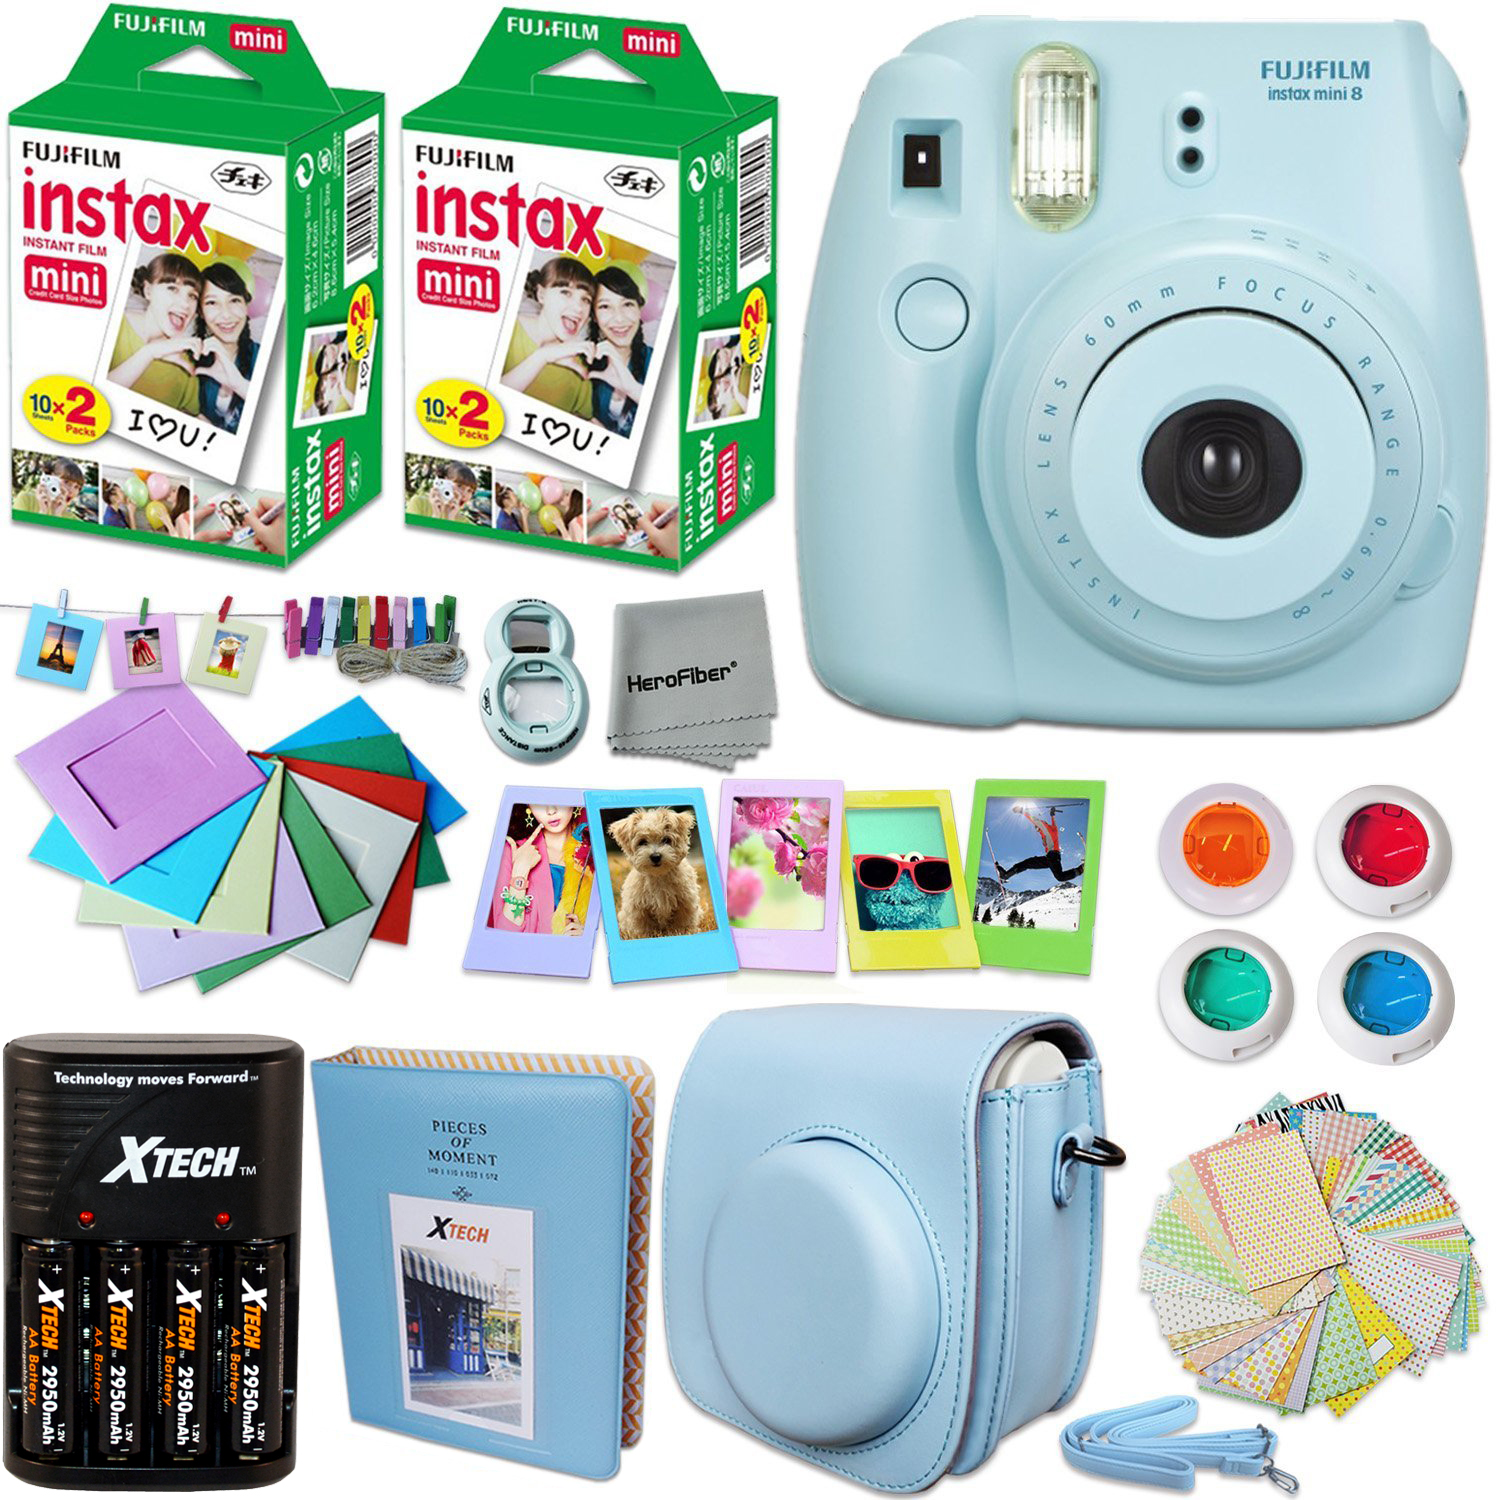 FujiFilm Instax Mini 8 Camera BLUE + Accessories KIT for Fujifilm Instax Mini 8 Camera includes: 40 Instax Film + Custom Case + 4 AA Rechargeable Batteries + Assorted Frames + Photo Album + MORE